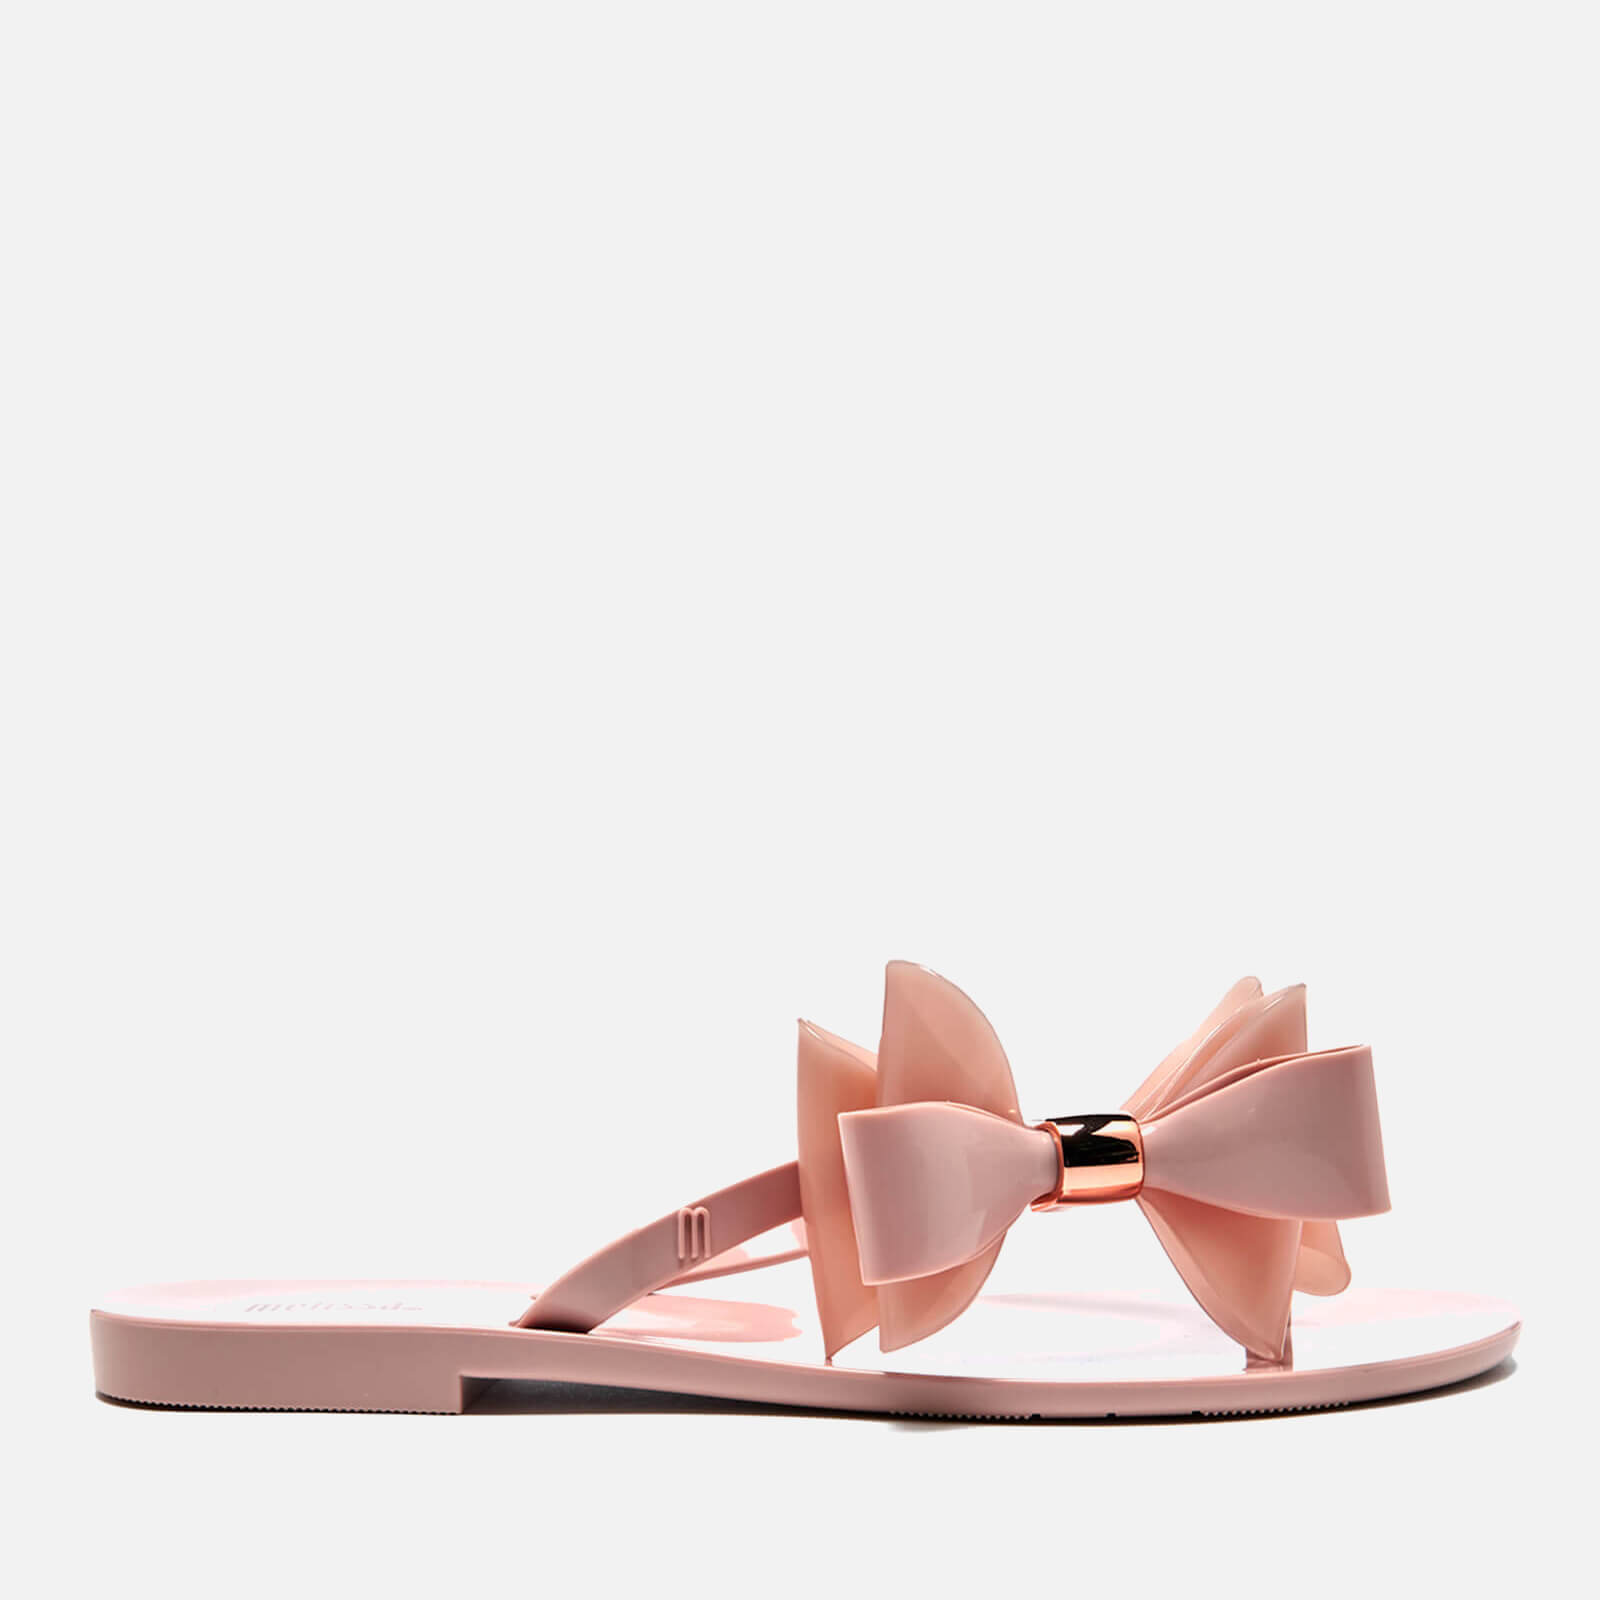 1fc33c4bb289 Melissa Women s Harmonic Cute Flip Flops - Blush - Free UK Delivery over £50